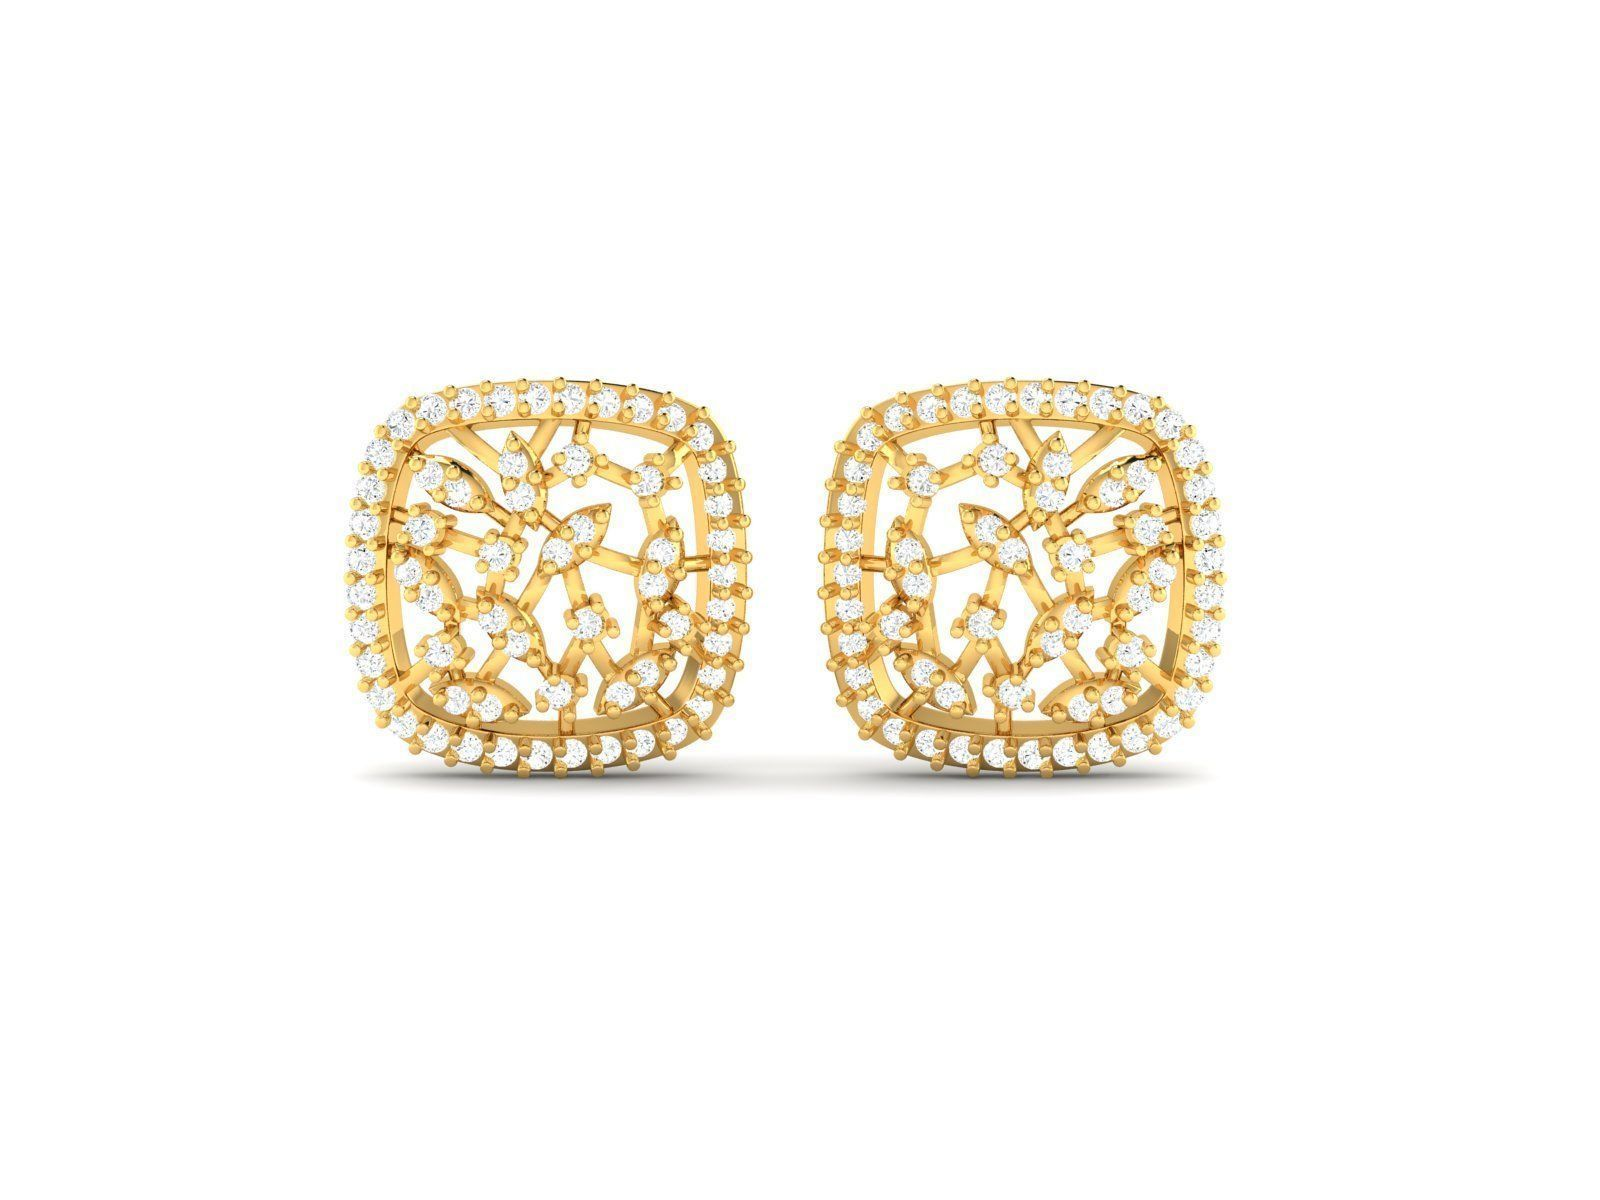 7c852446d Squircle Shaped Gold Stud Earrings With Diamonds 3D model 3D ...